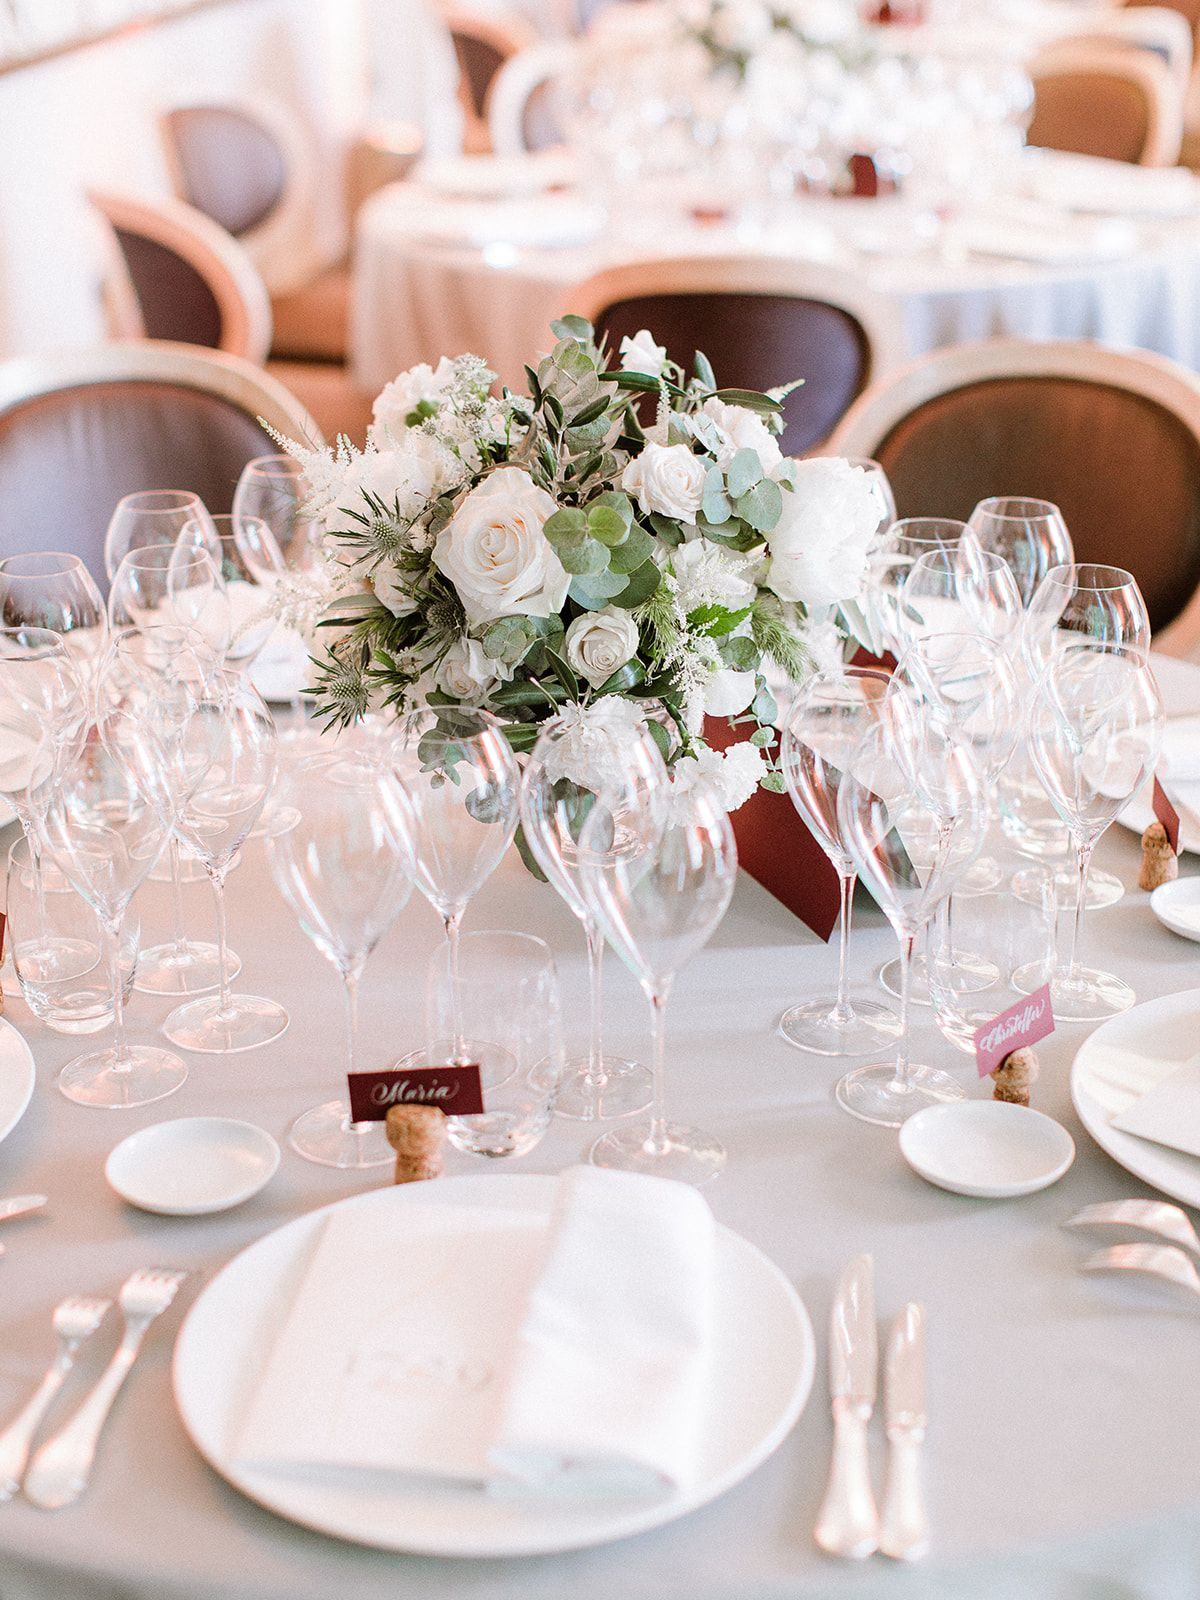 Low wedding centerpiece with white flowers and greenery